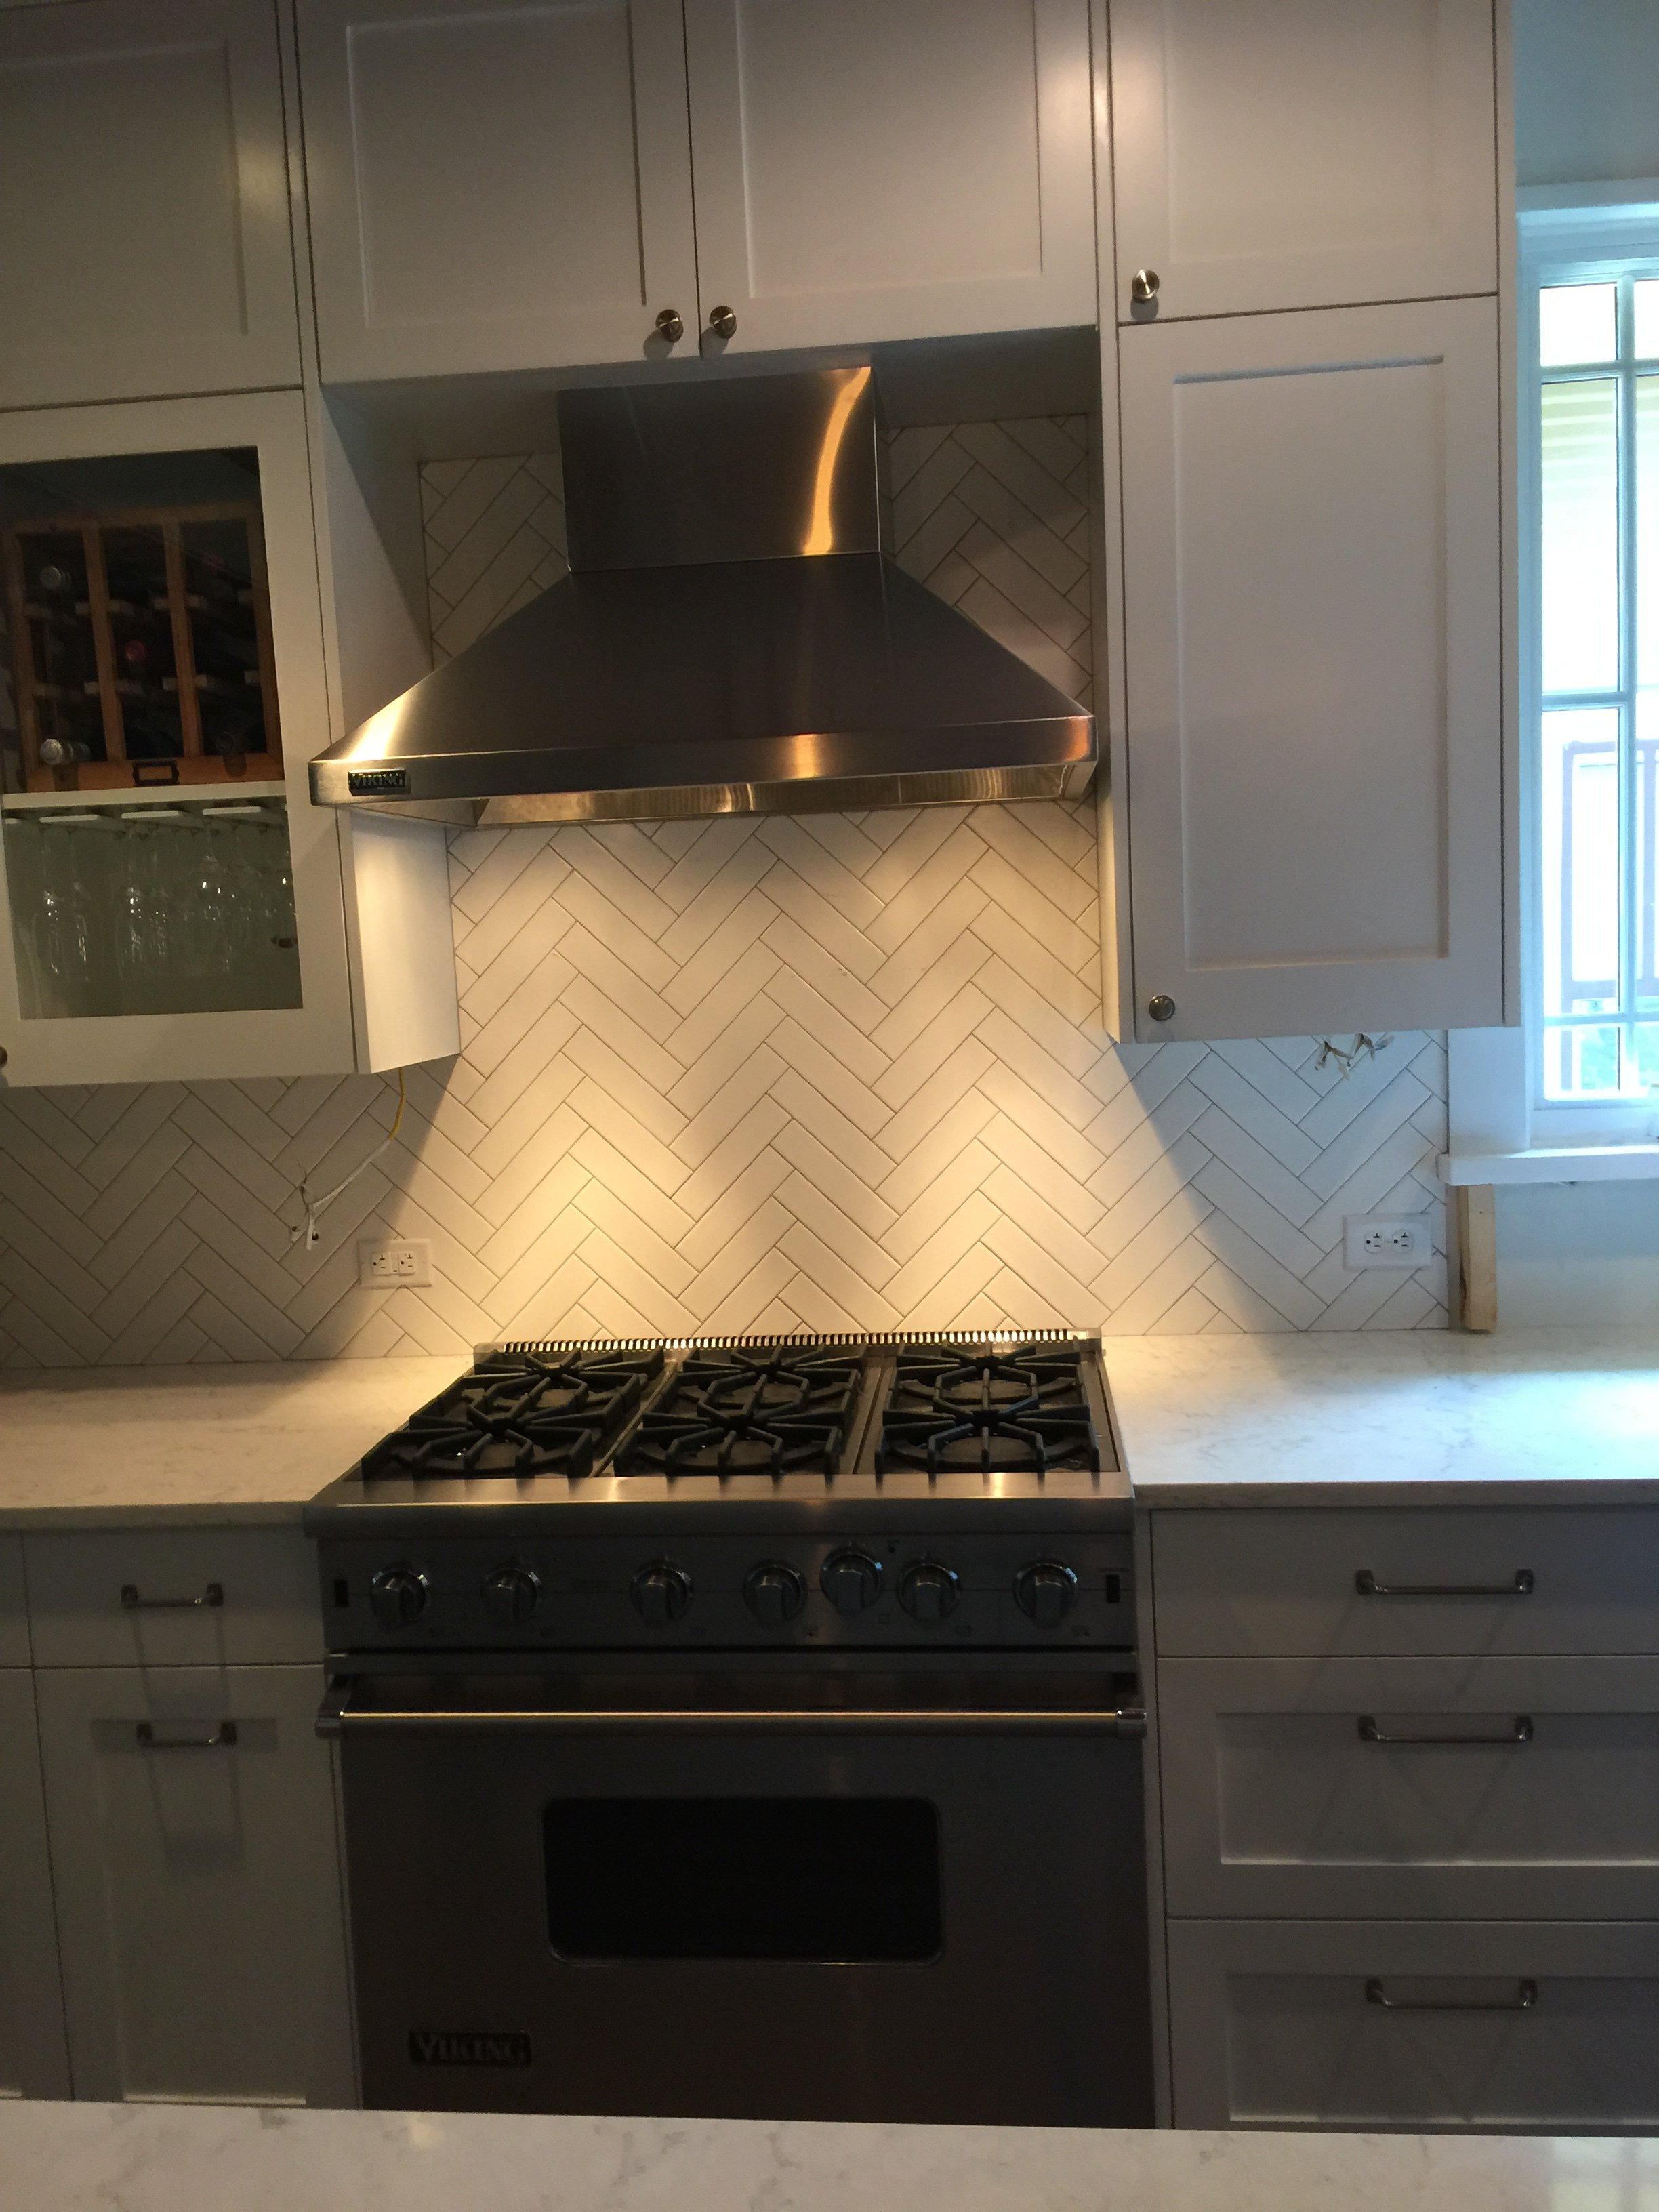 Kitchen Gas & Heating Repair, San Antonio TX